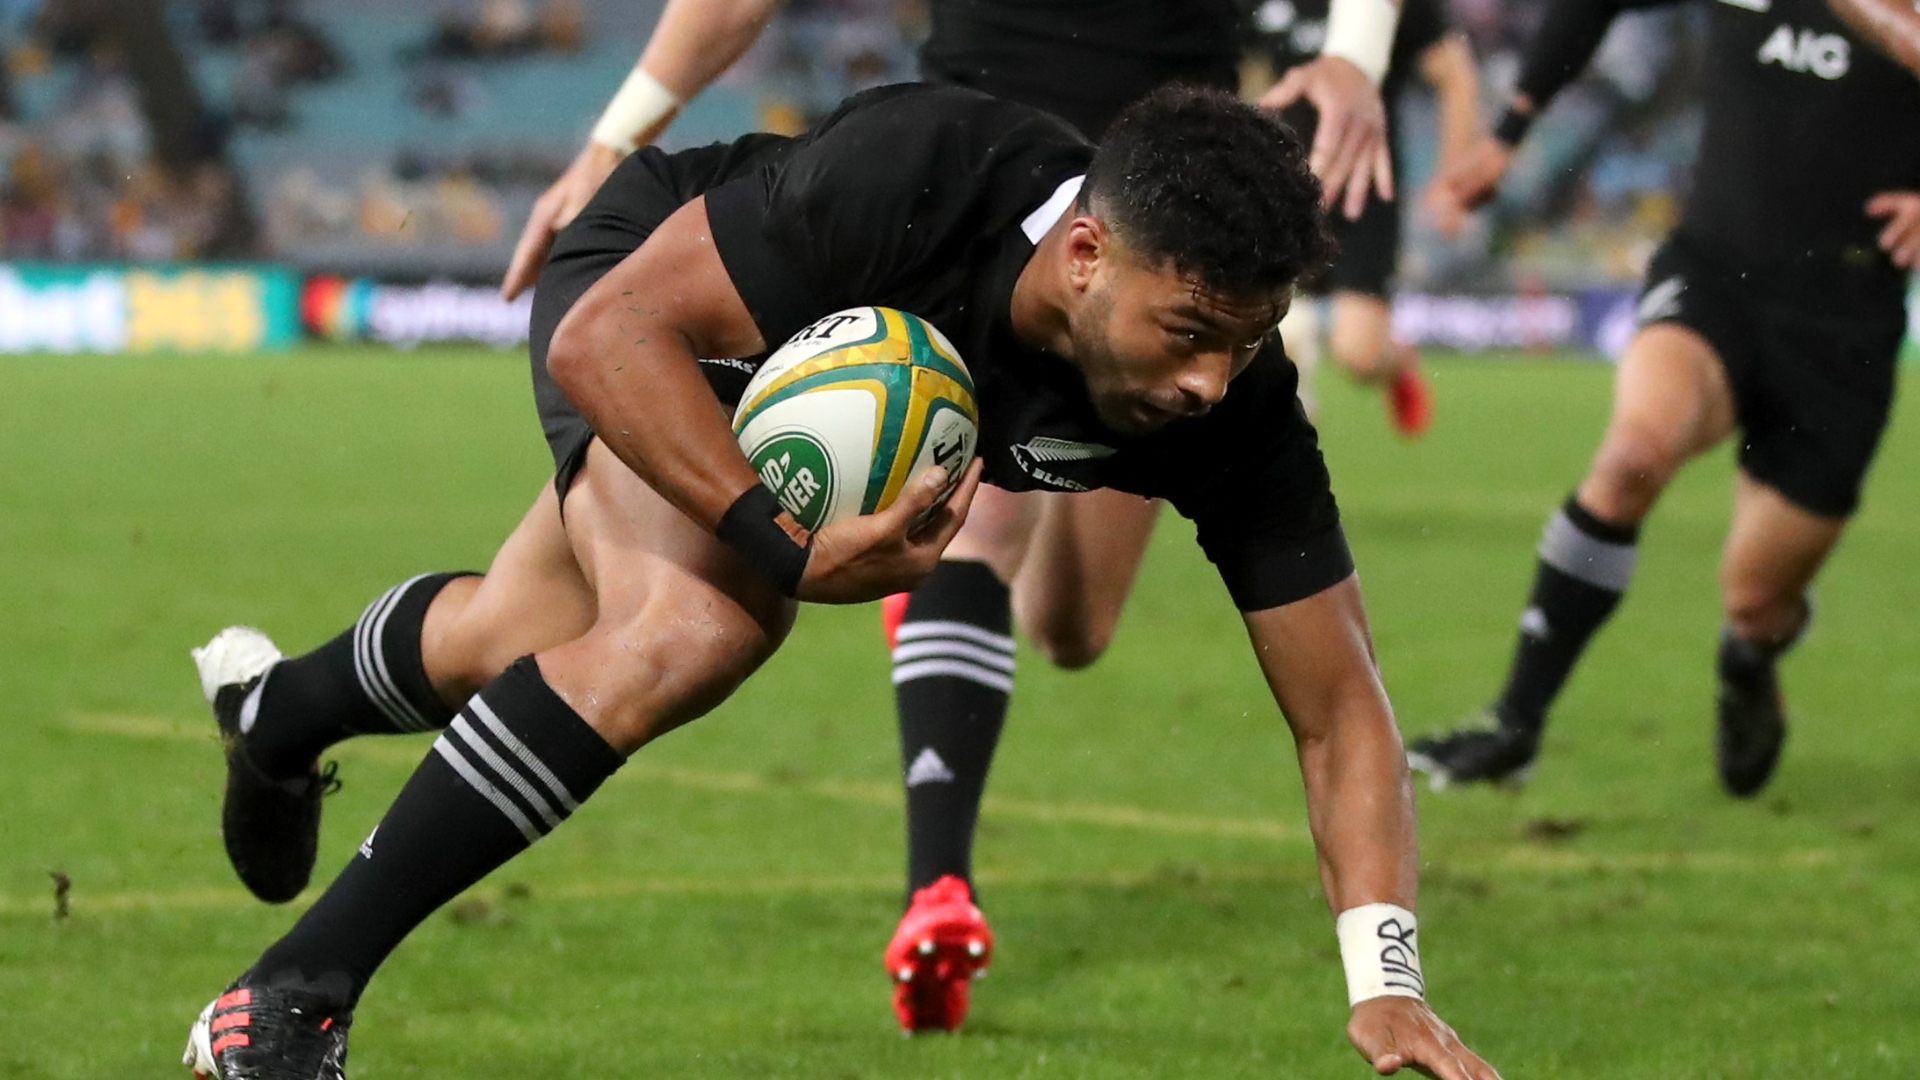 Australia 5-43 New Zealand: Dominant All Blacks seal Bledisloe Cup triumph with record win